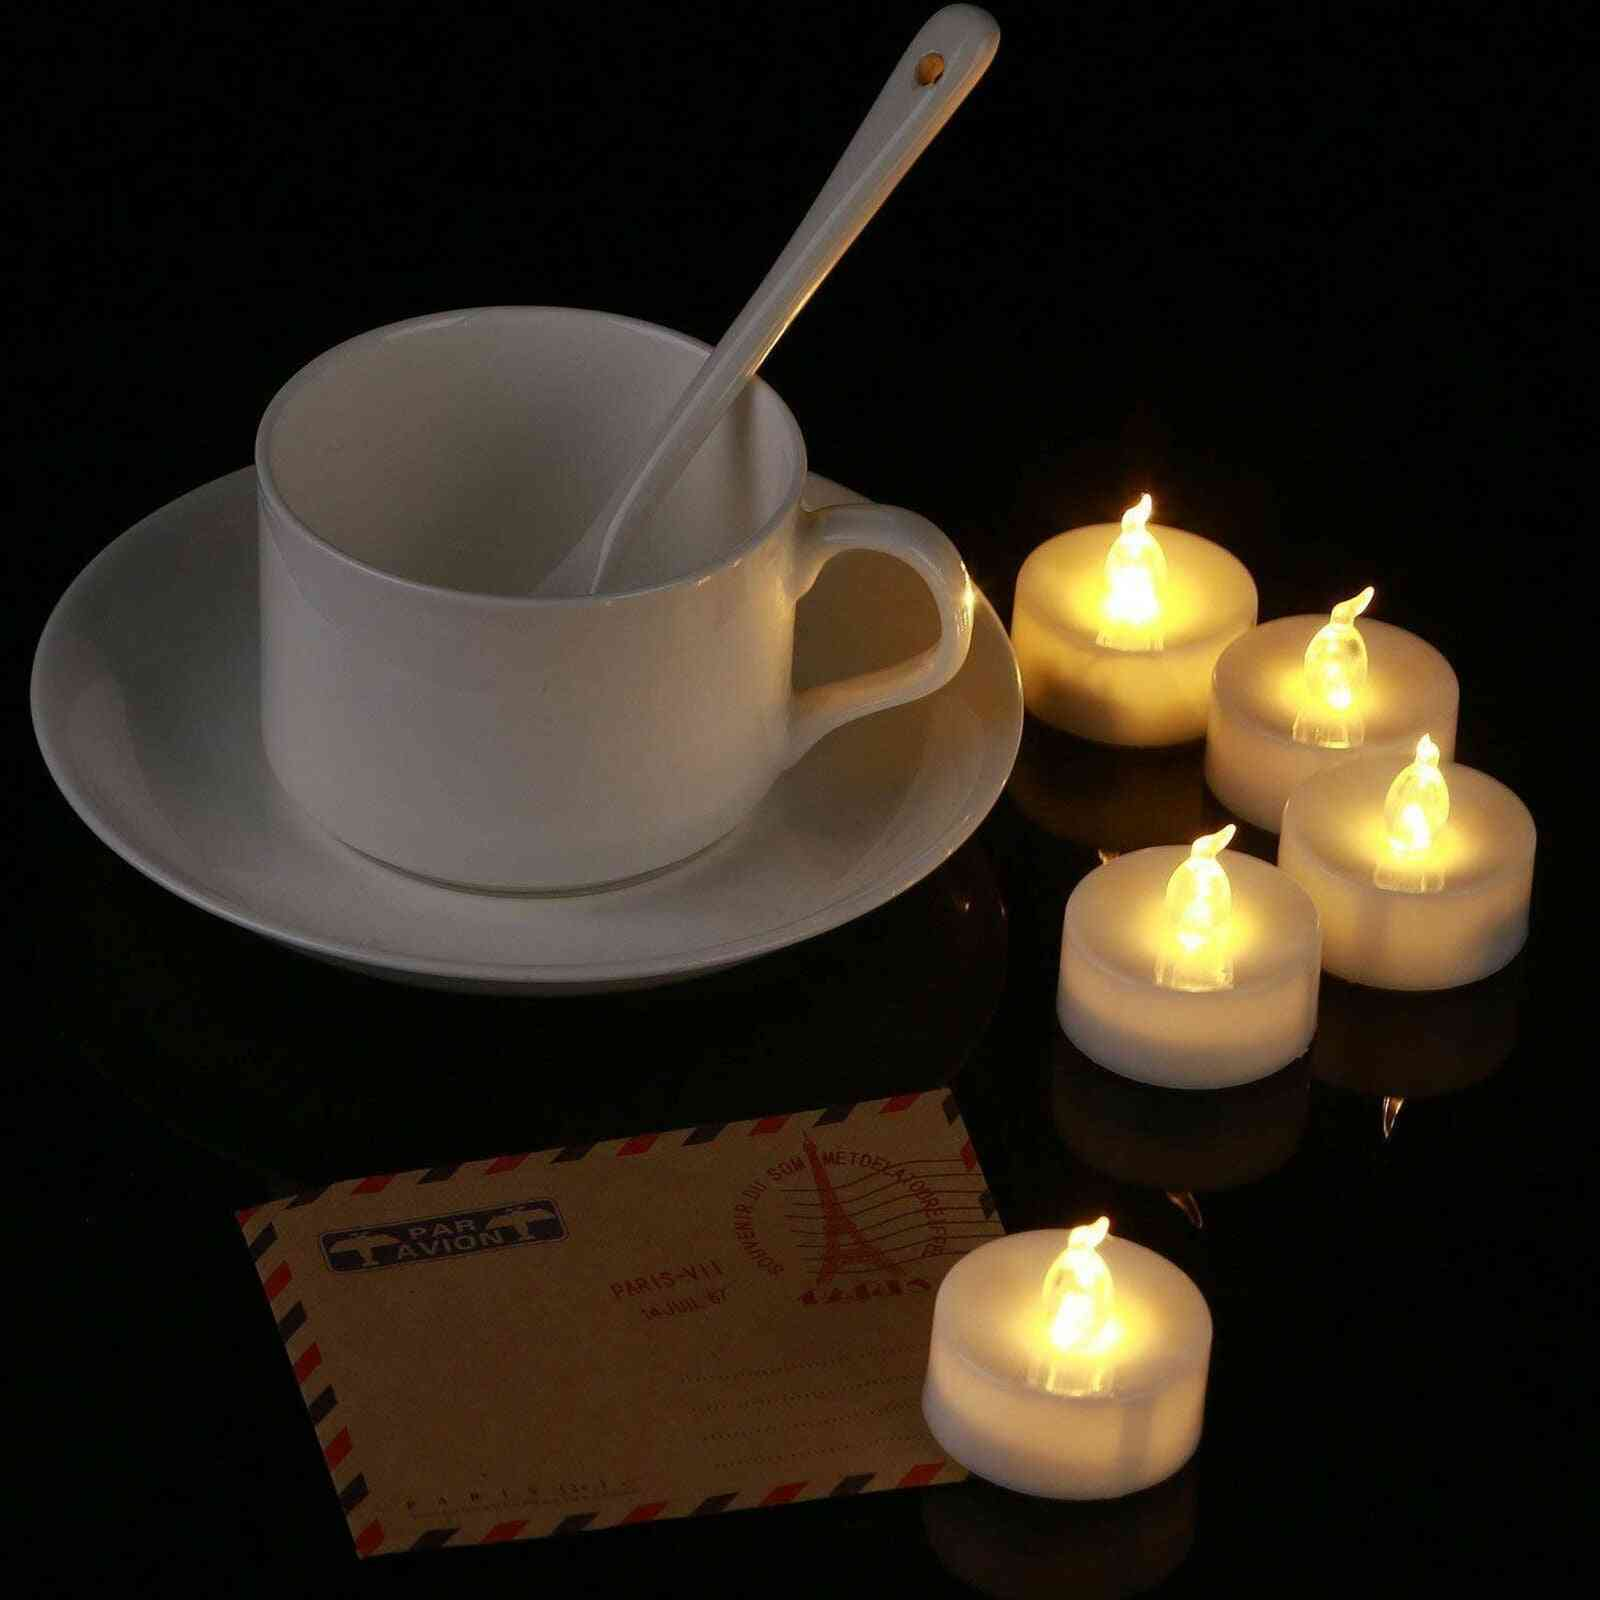 12pcs Battery Operated Led - Lights Candles Flameless, Flickering Weeding Decor